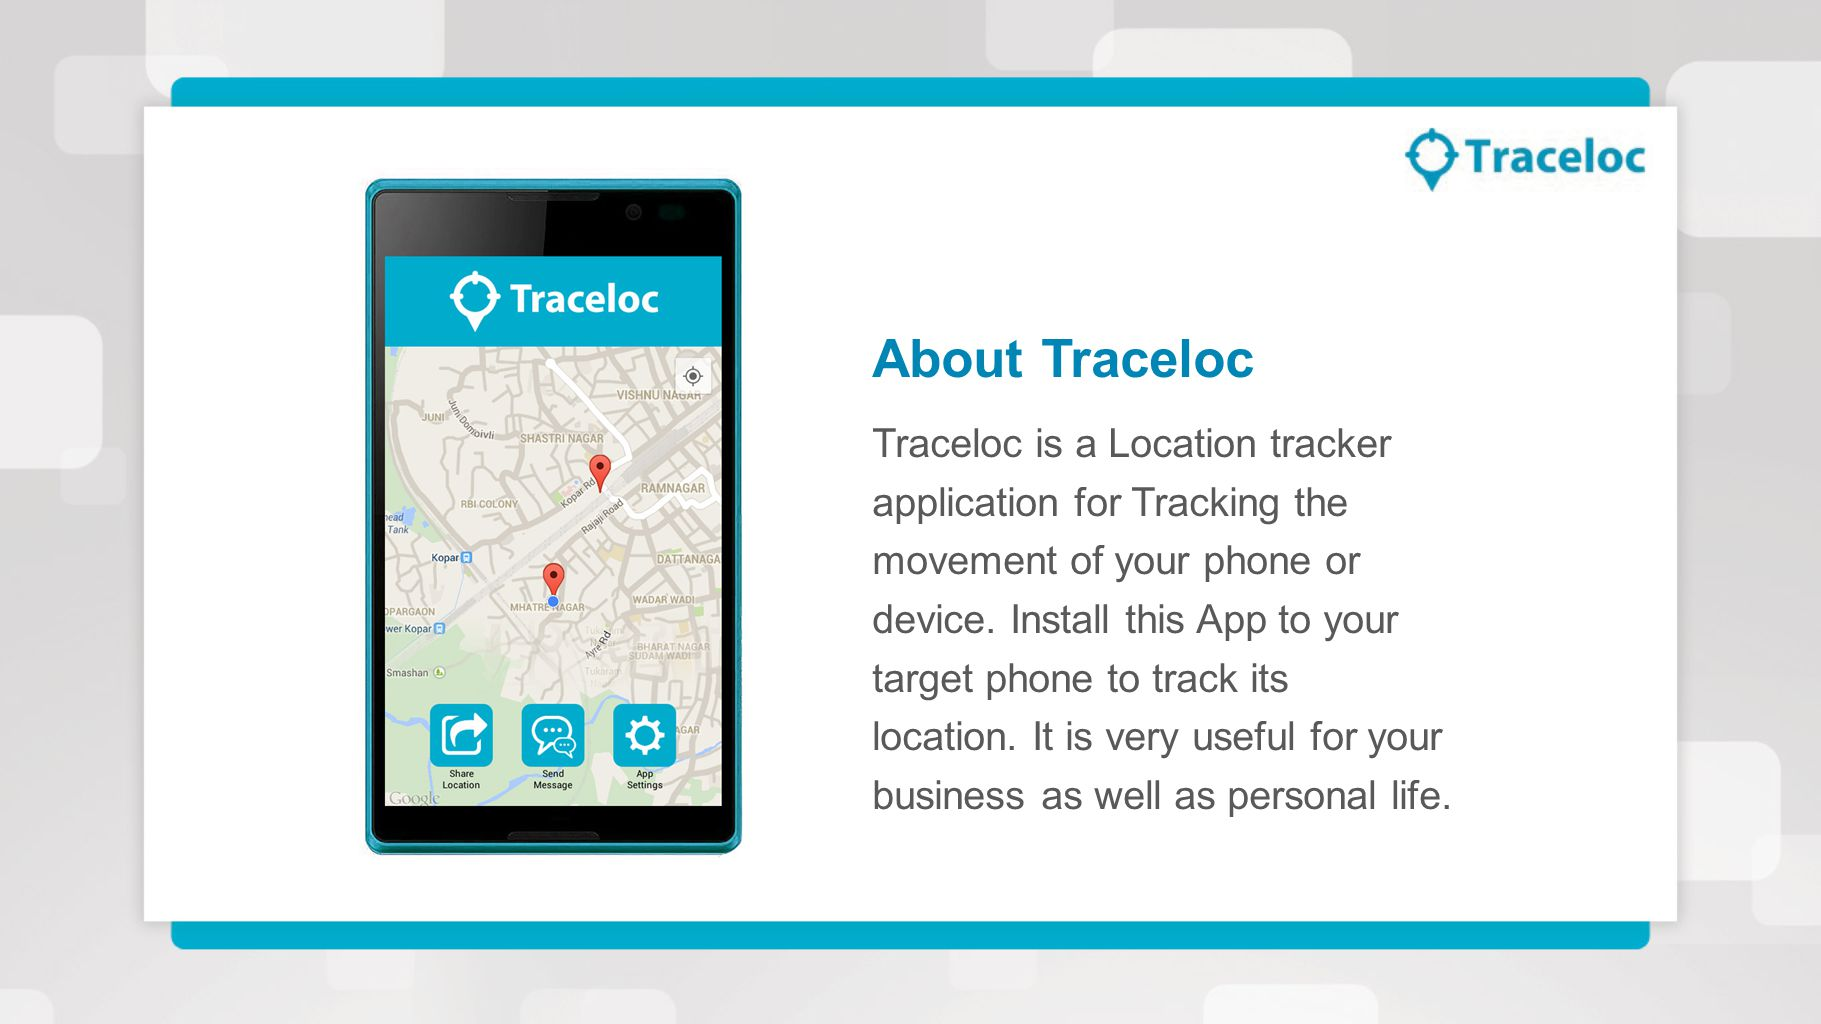 Traceloc is a Location tracker application for Tracking the movement of your phone or device.